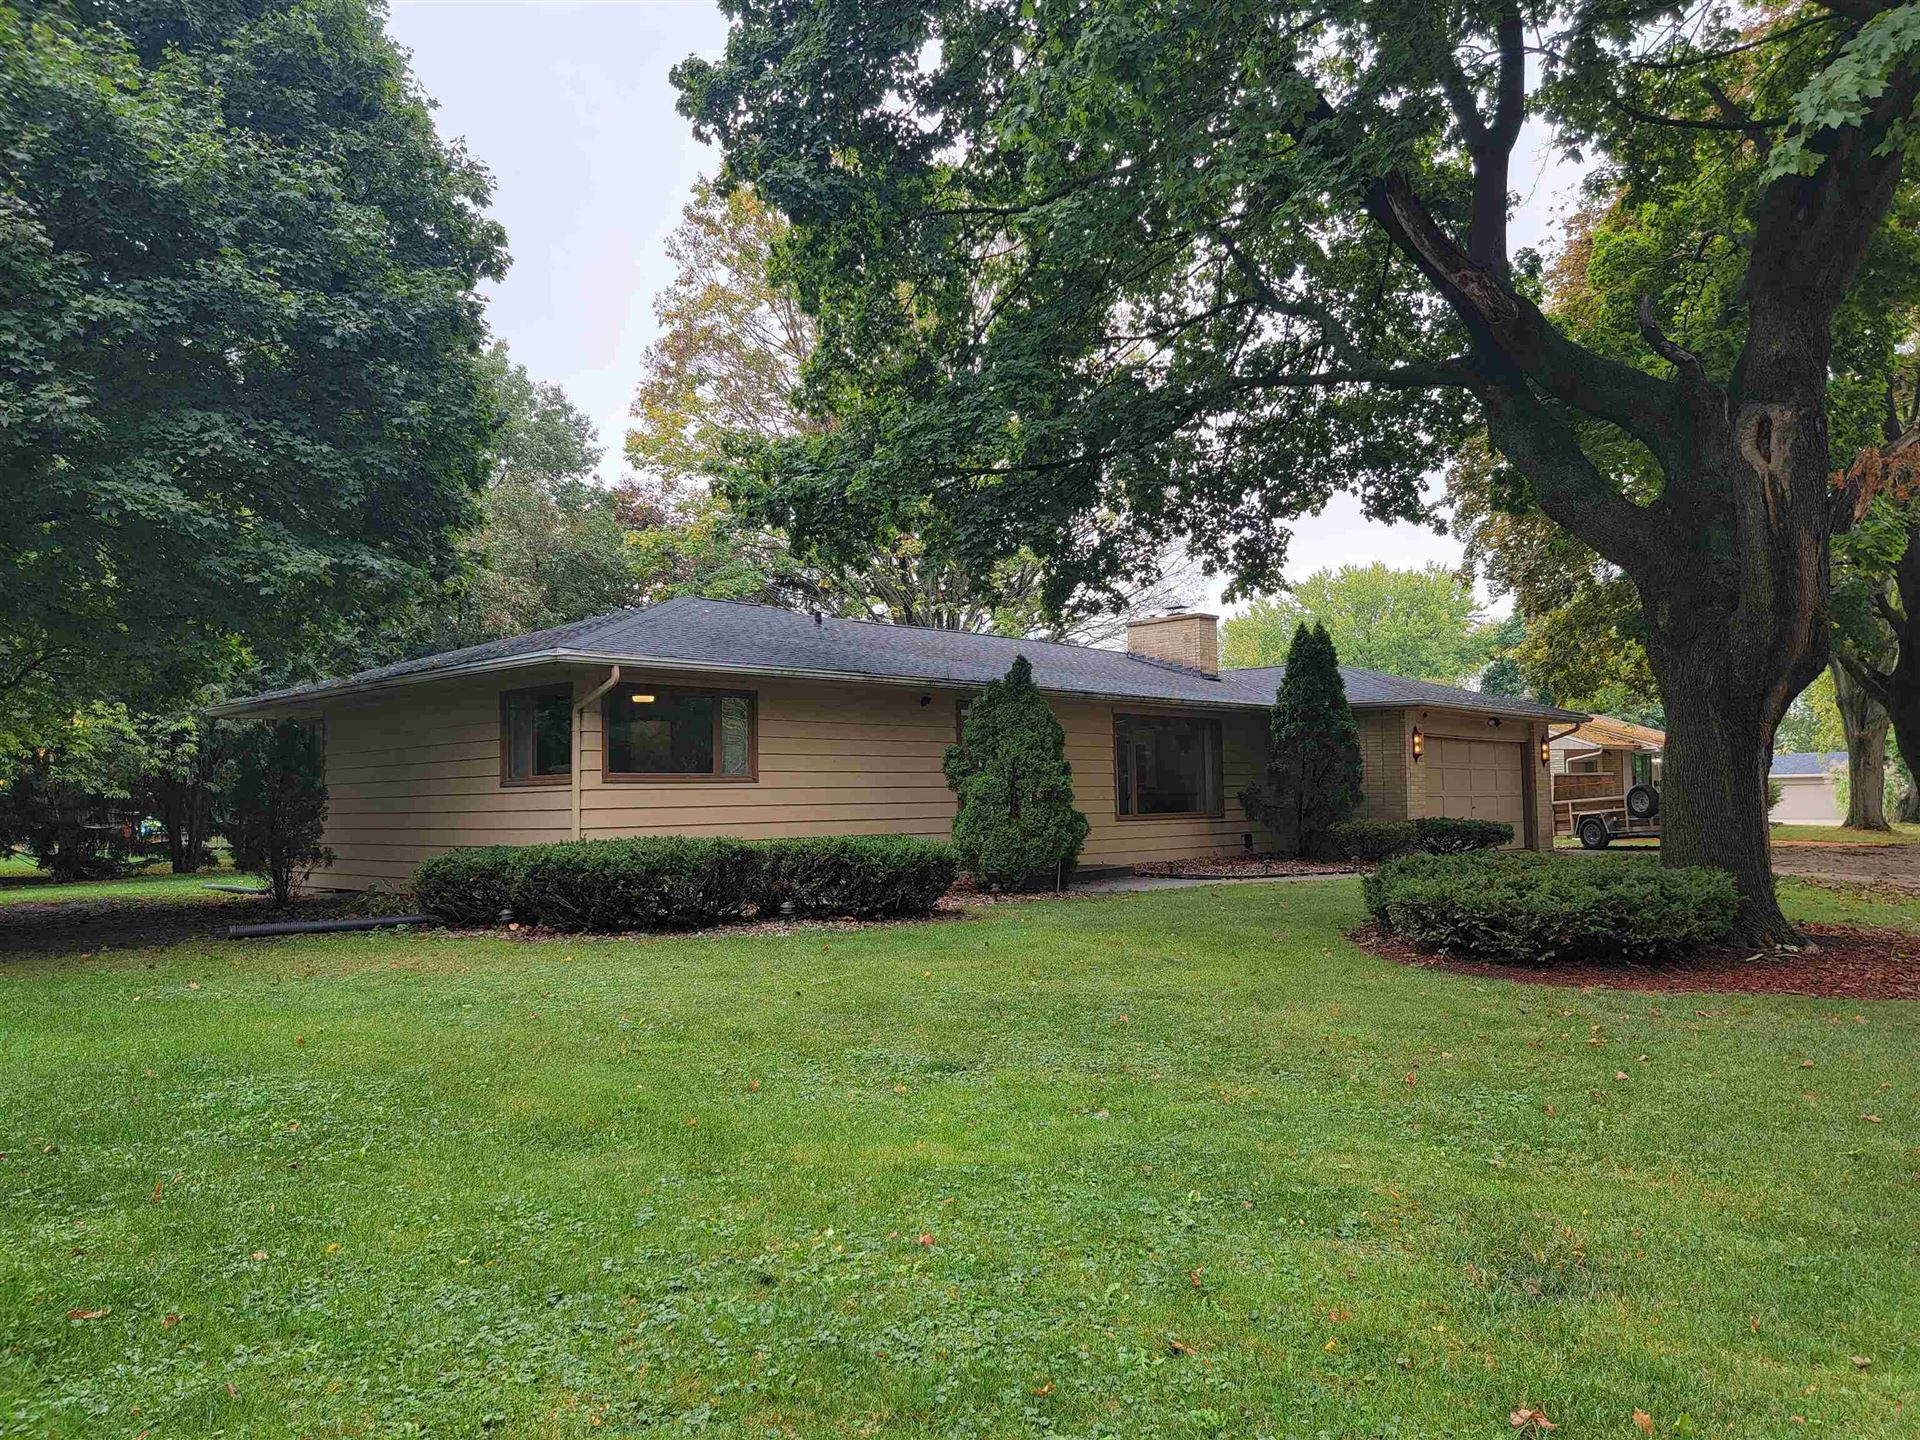 812 N Grant Ave, Janesville, WI 53548 - #: 1921615